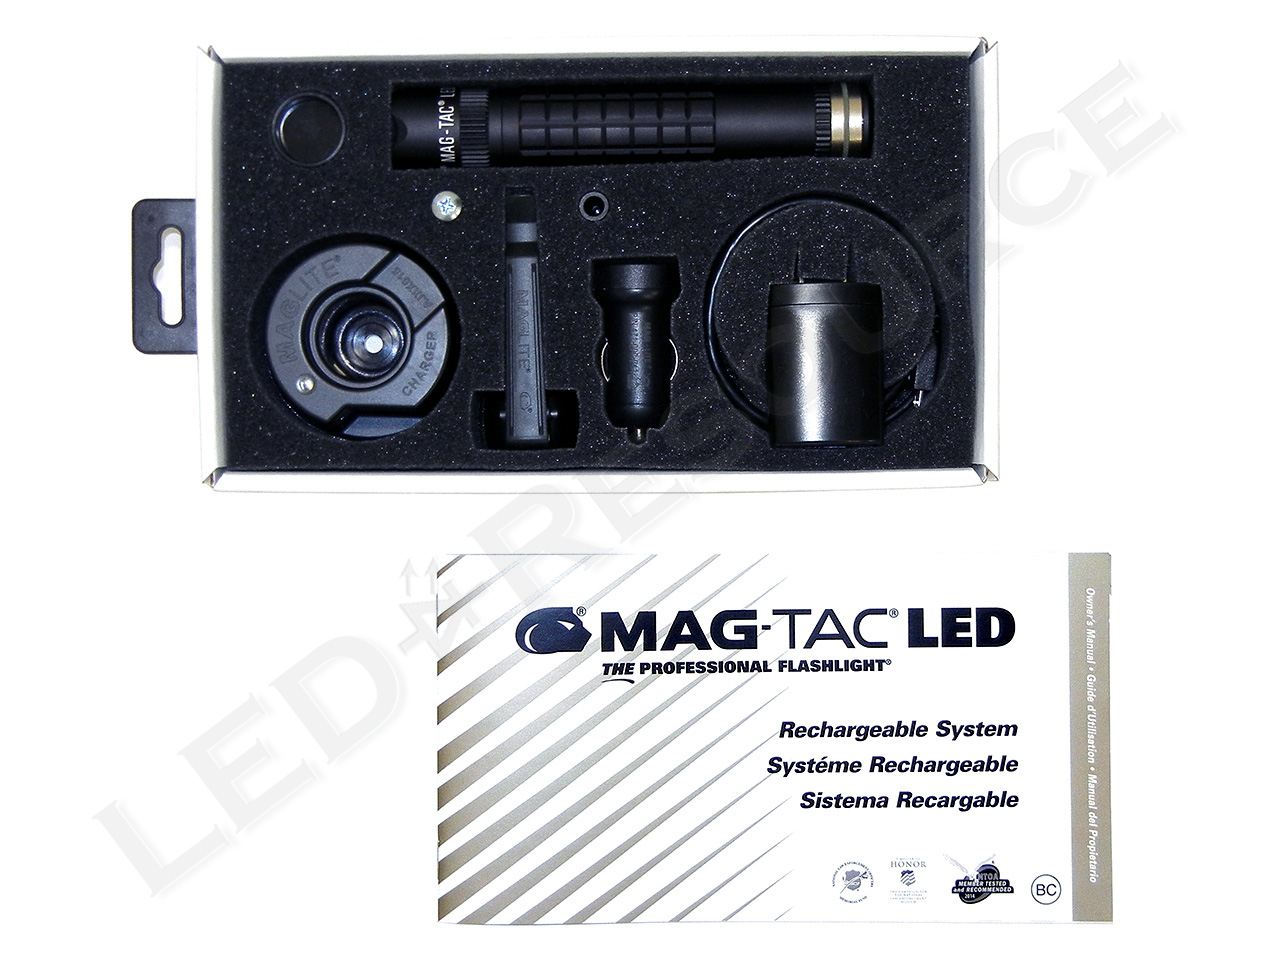 Maglite Mag Tac Led Rechargeable Review Led Resource